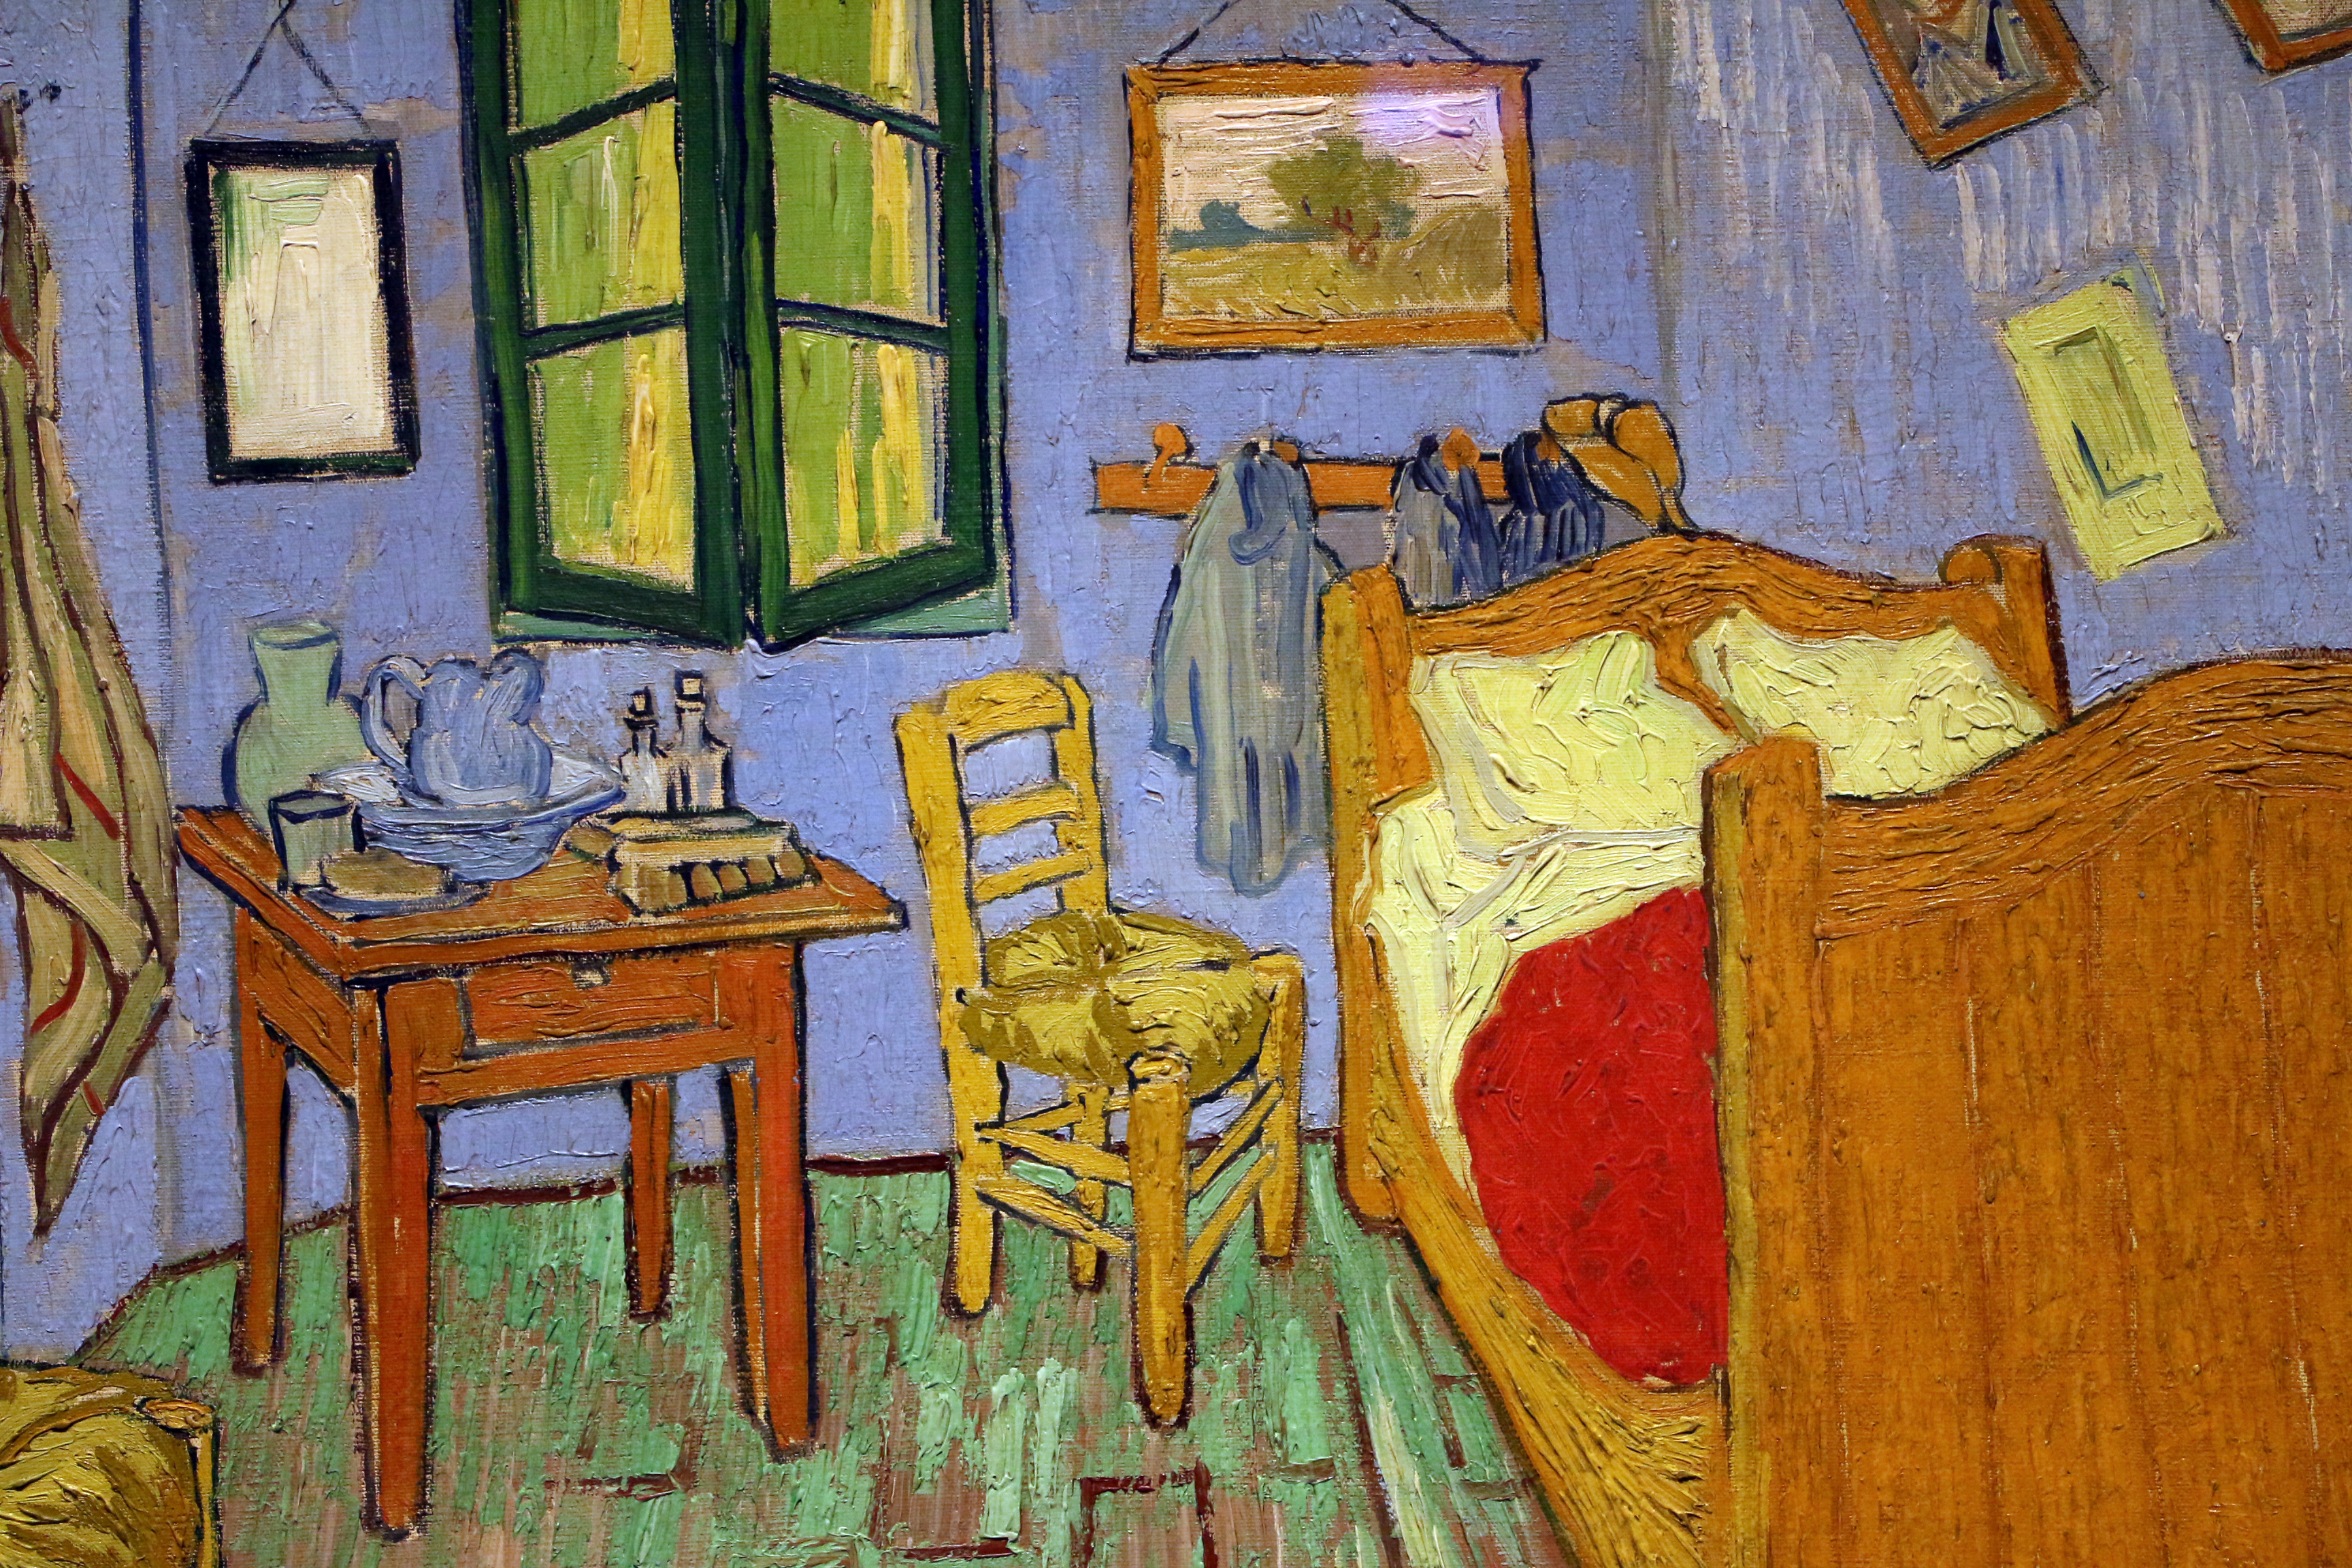 File vincent van gogh la camera da letto 1889 wikimedia commons - La camera da letto van gogh ...